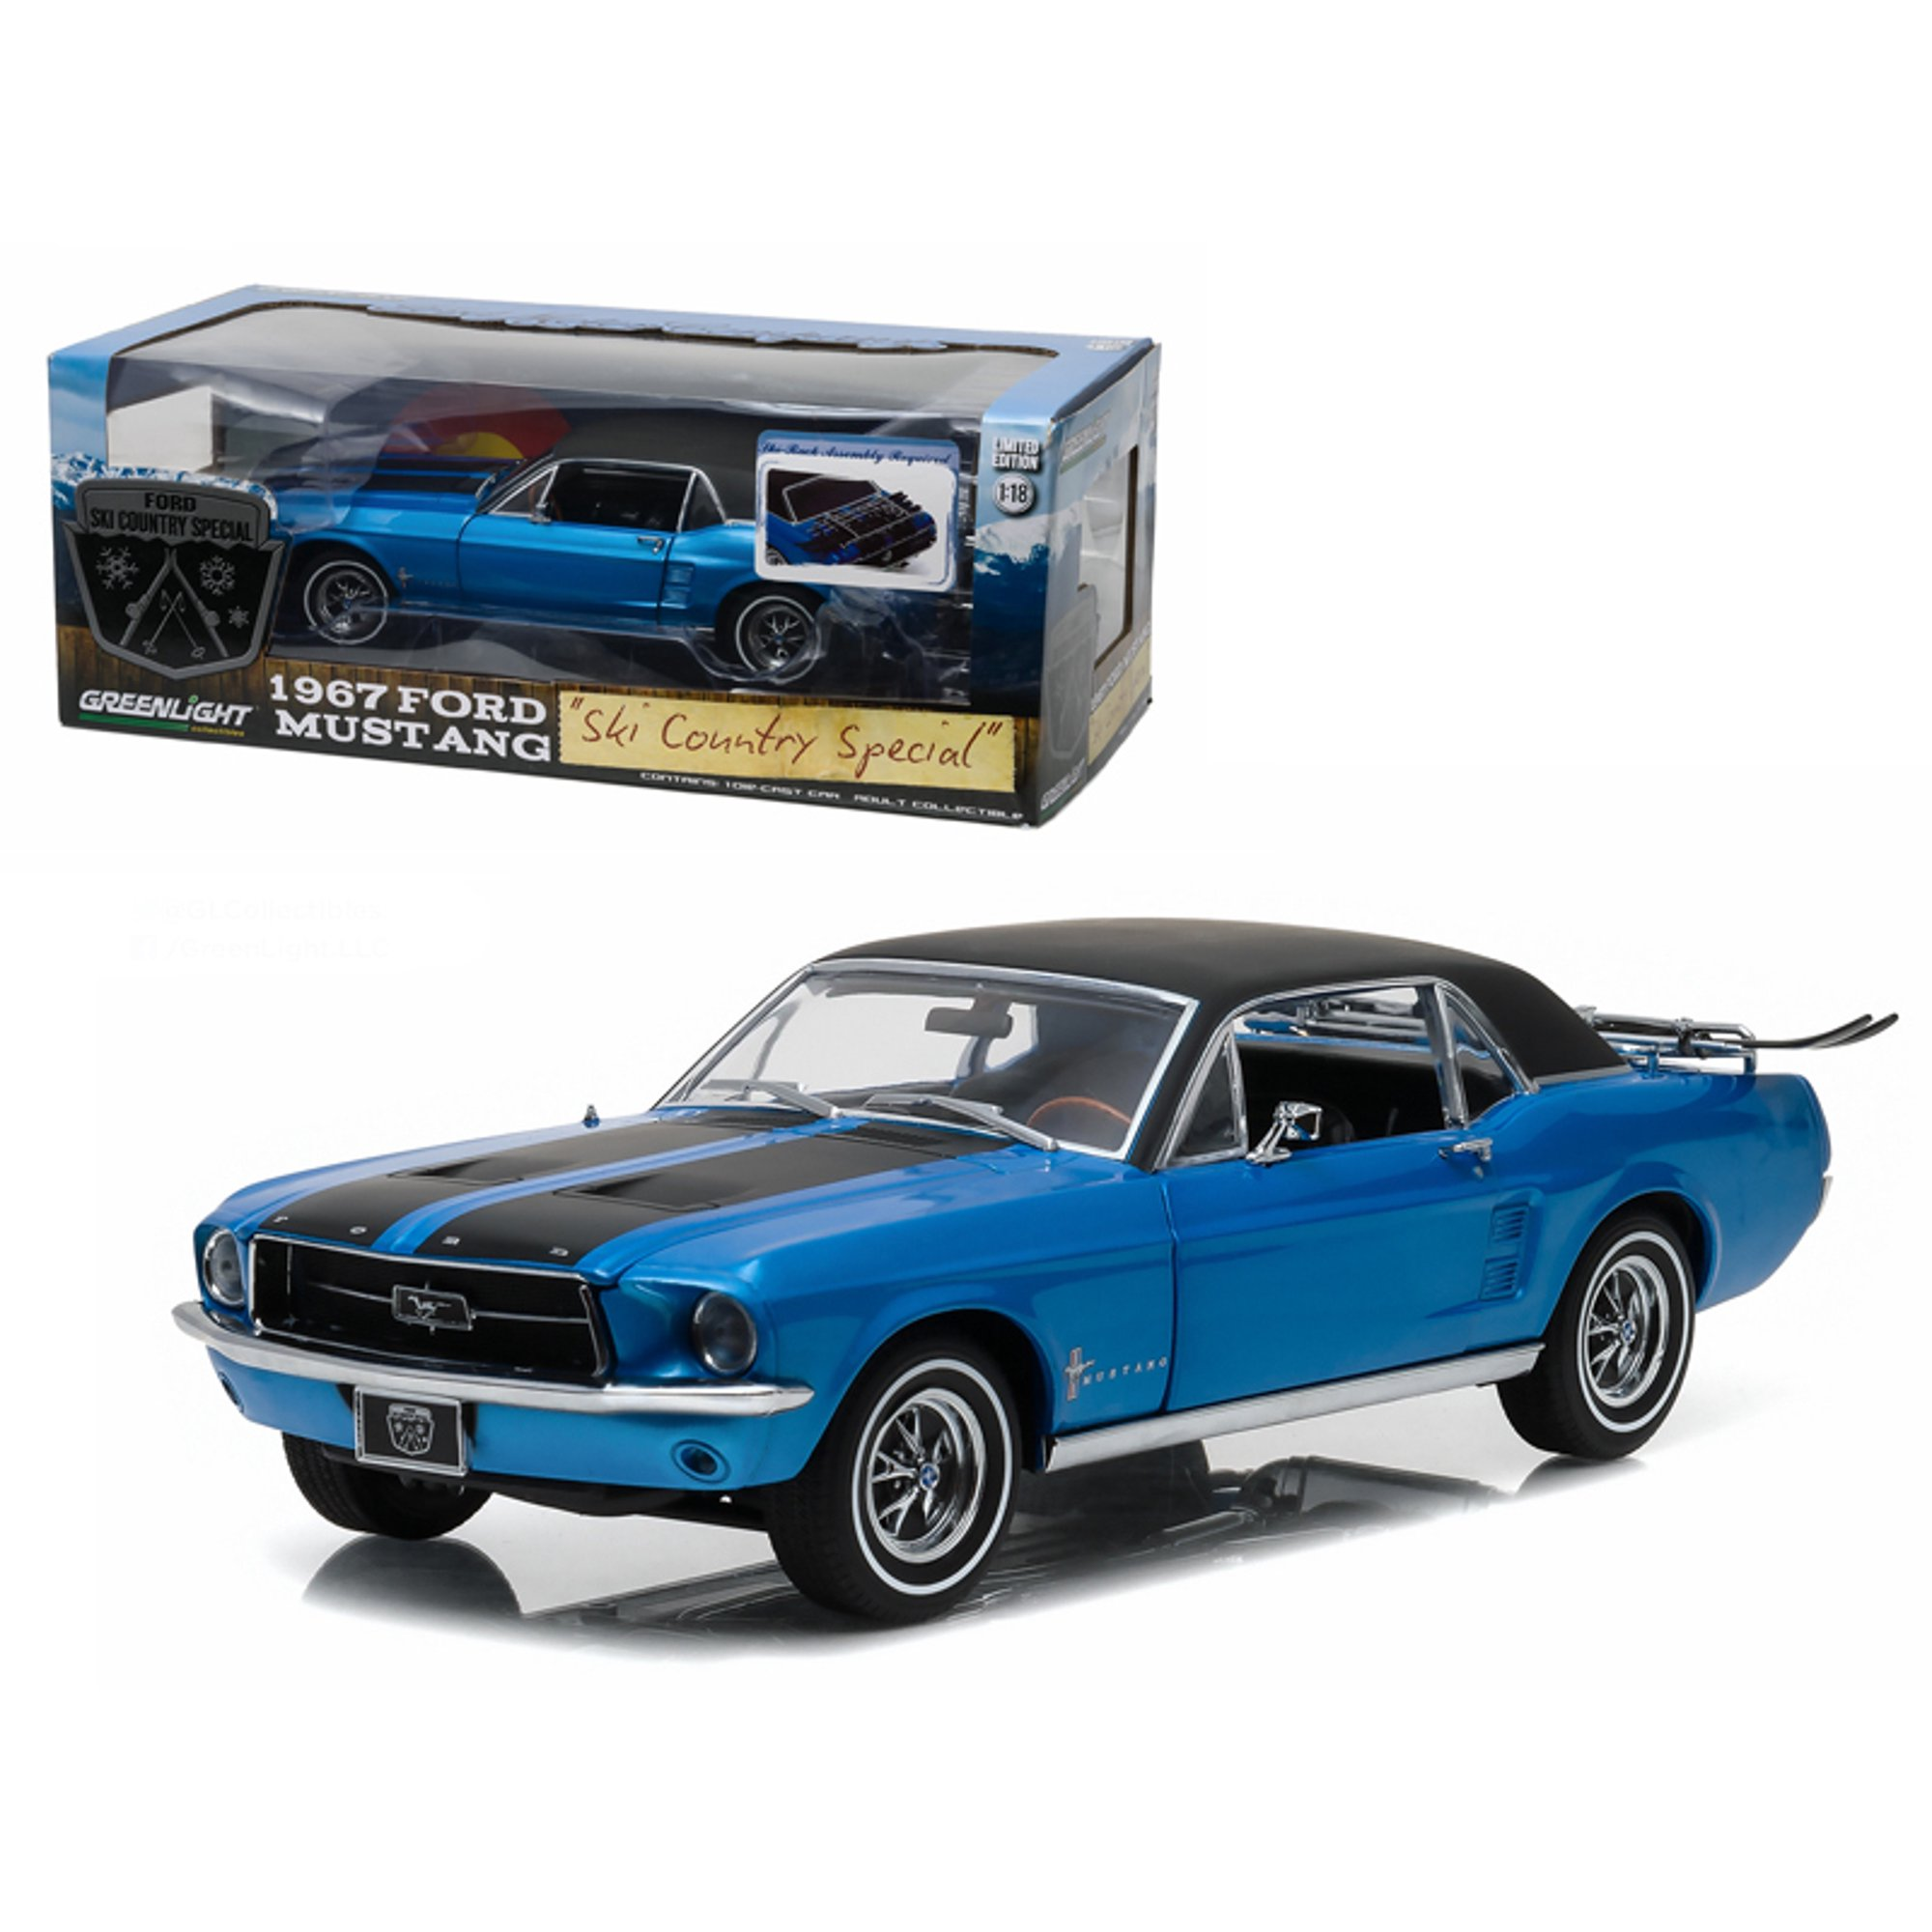 1967 ford mustang coupe ski country special vail blue 1 18